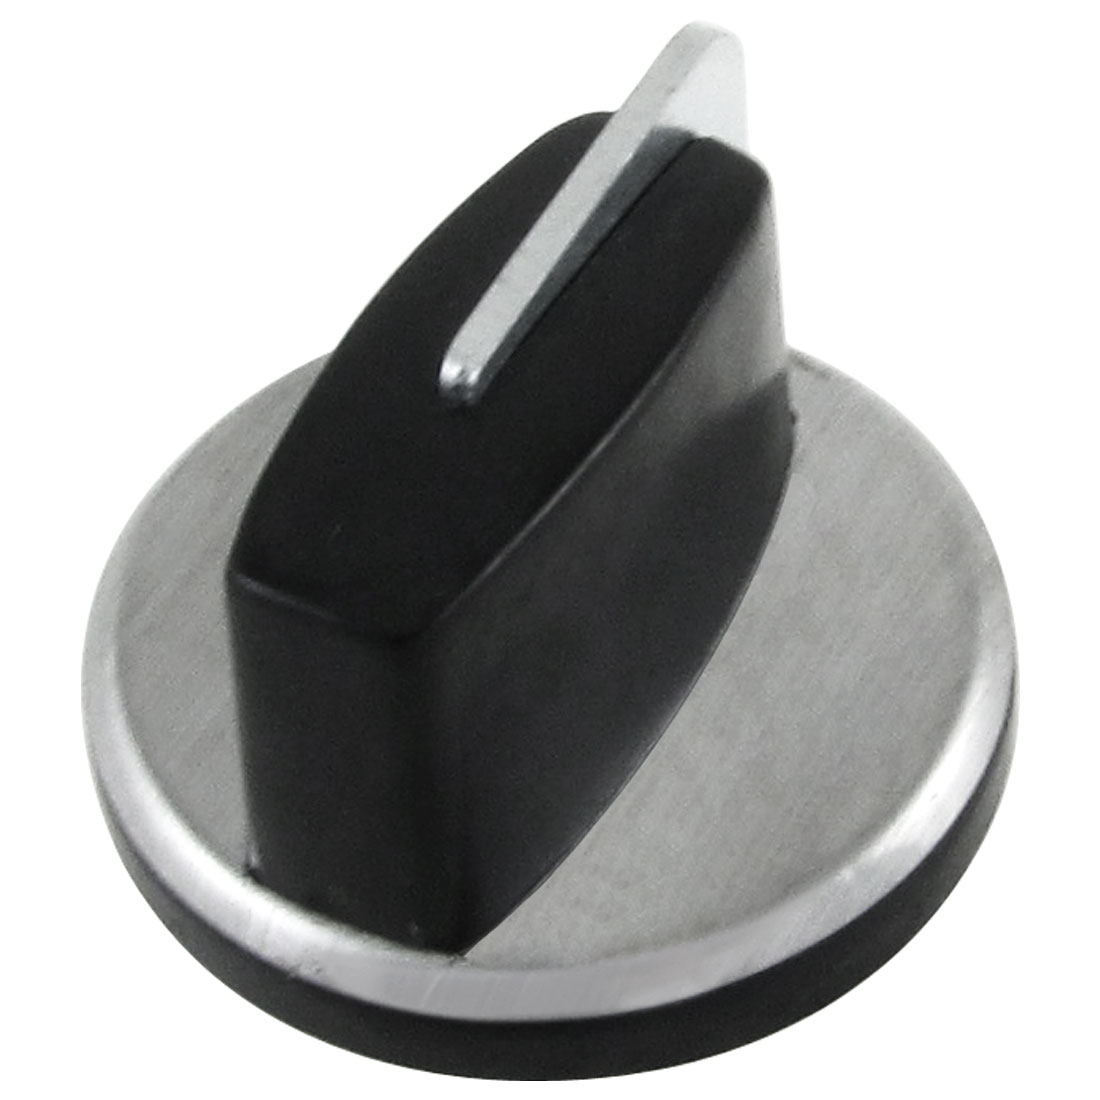 Unique Bargains Replacement Black Plastic Metal Gas Stove Oven Range Knob at Sears.com